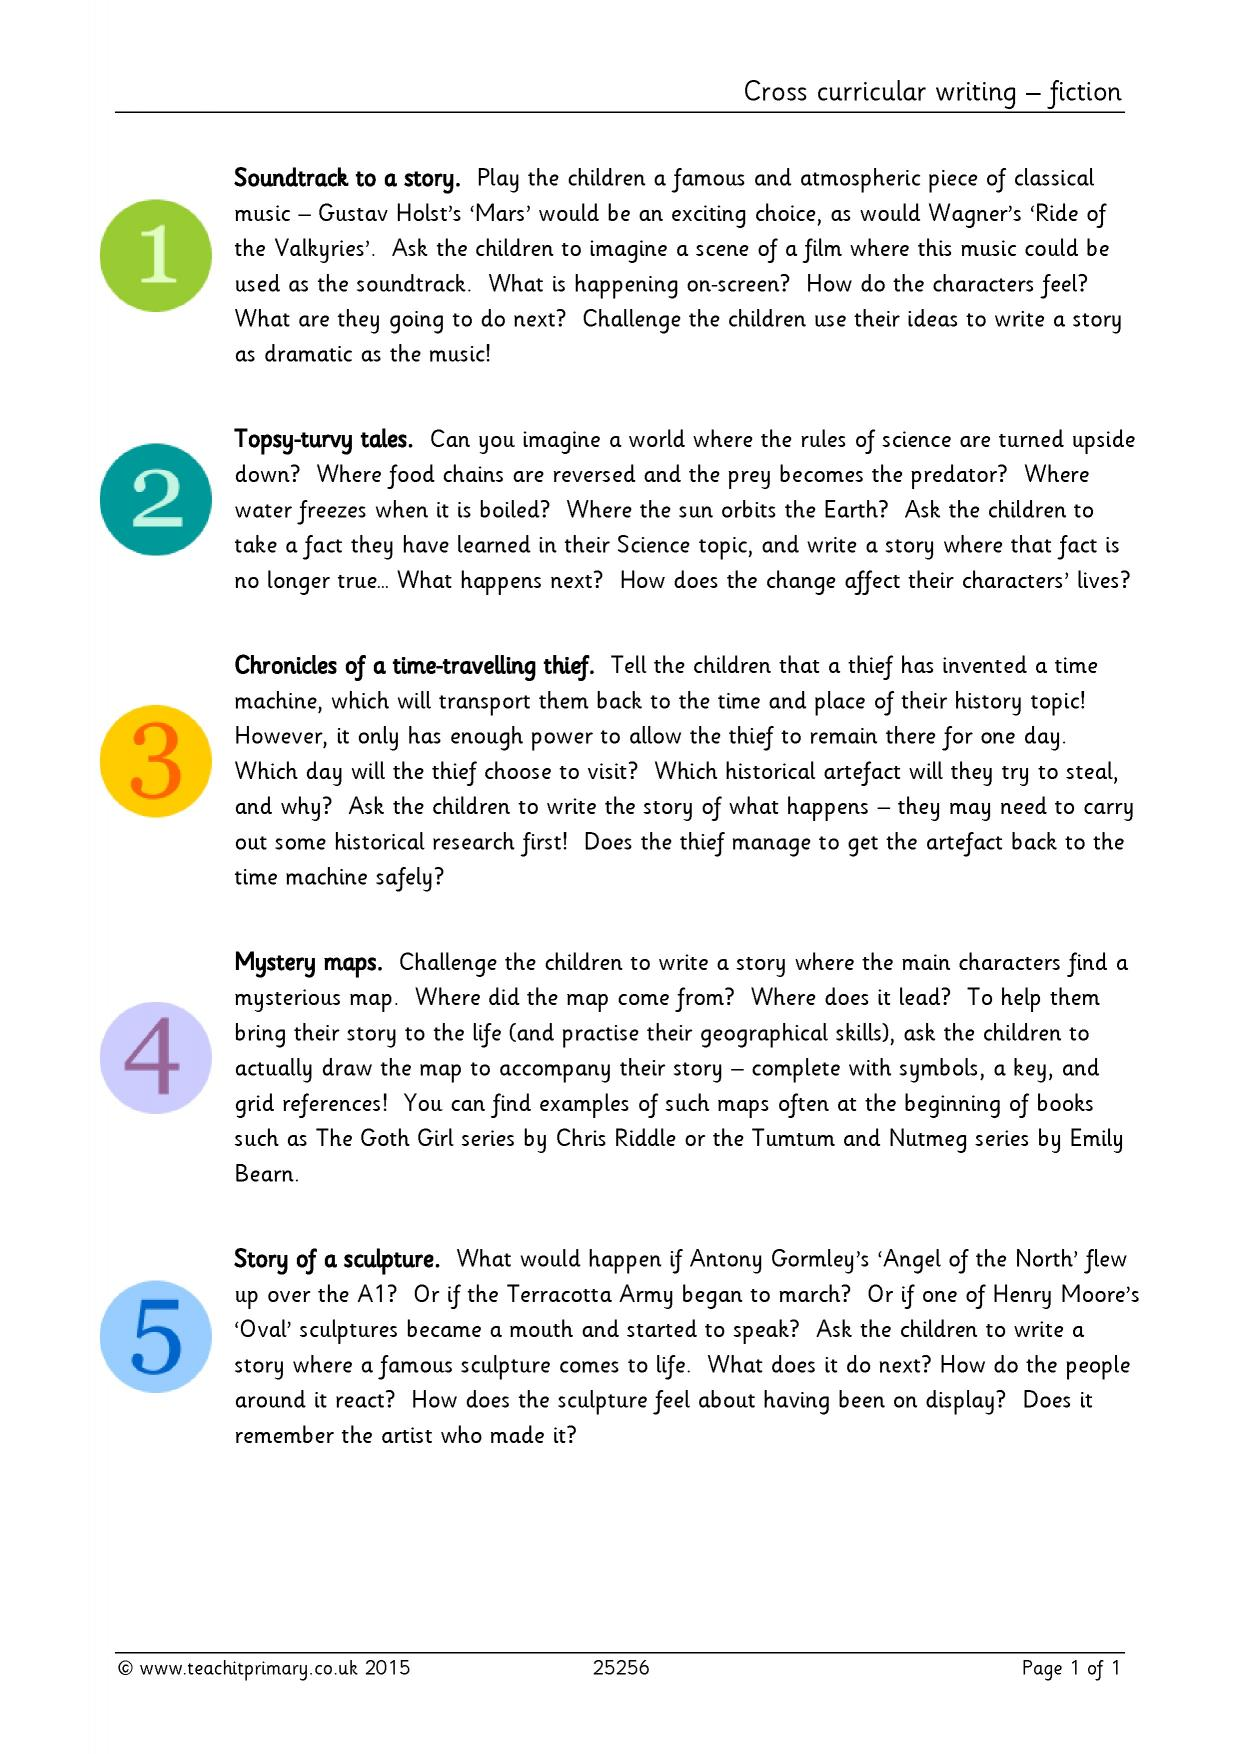 creative writing lesson ideas ks2 Scholastic's story starters kids' writing activity generates creative writing prompts, from general fiction to adventure, fantasy, and science fiction.